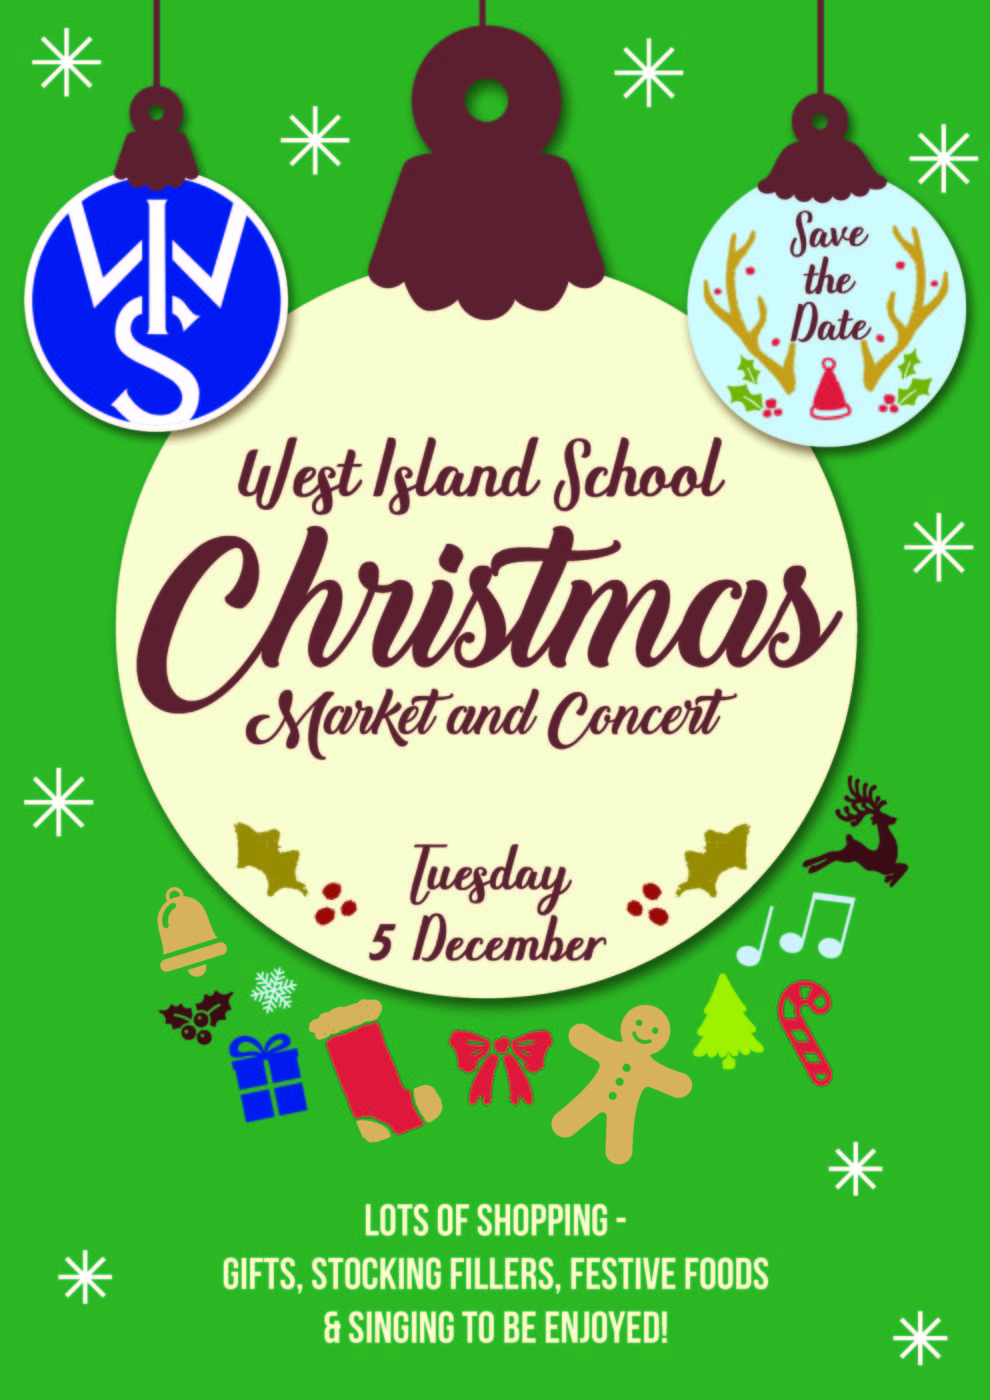 Christmas Save The Date Clipart.West Island School Esf Save The Date Wis Christmas Market